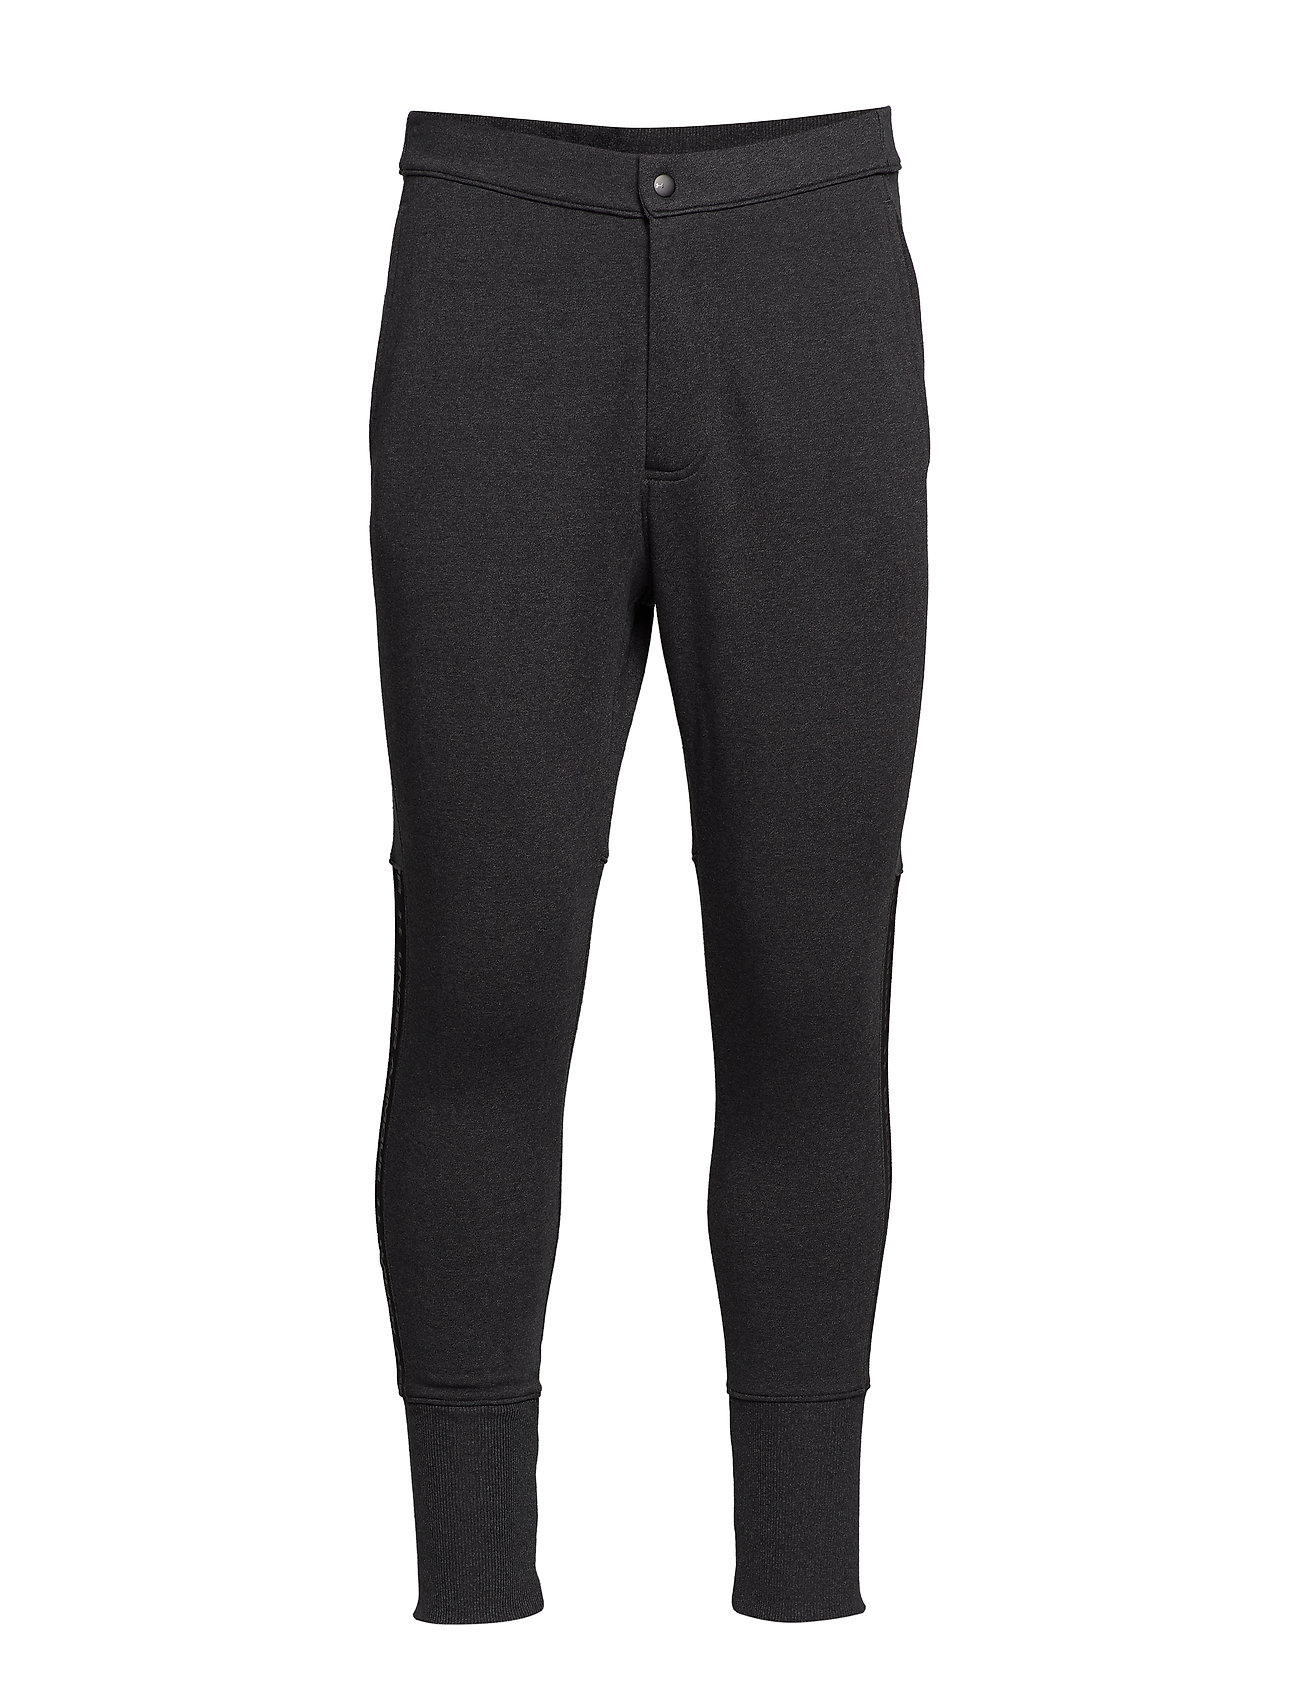 Under Armour Accelerate Off-Pitch Pant - BLACK